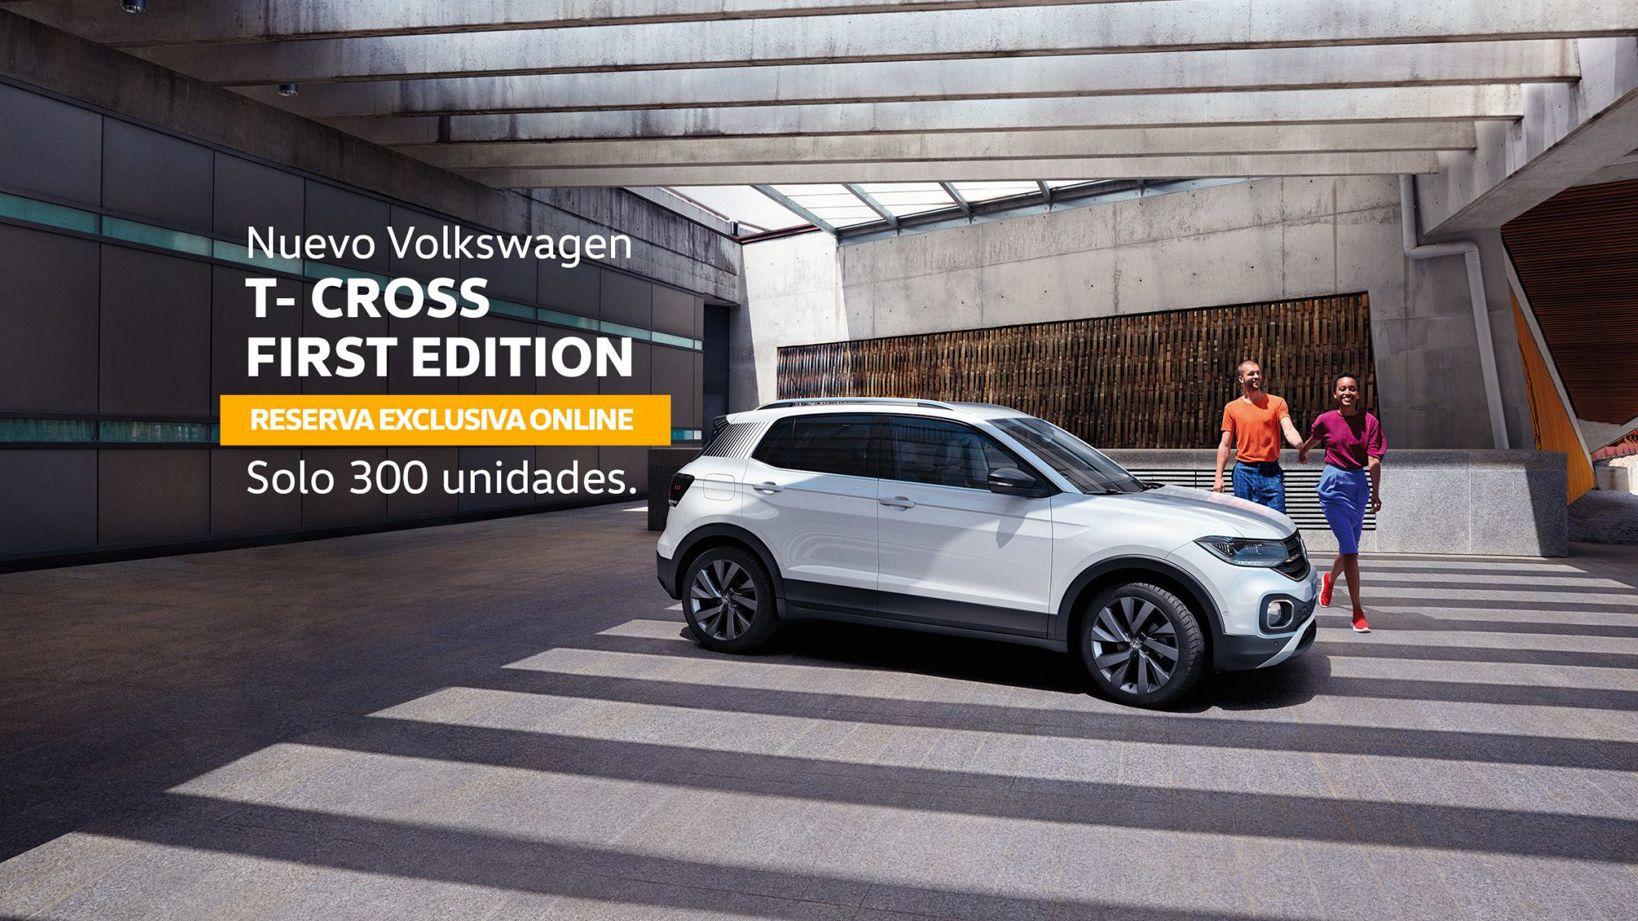 NUEVO T-CROSS FIRST EDITION